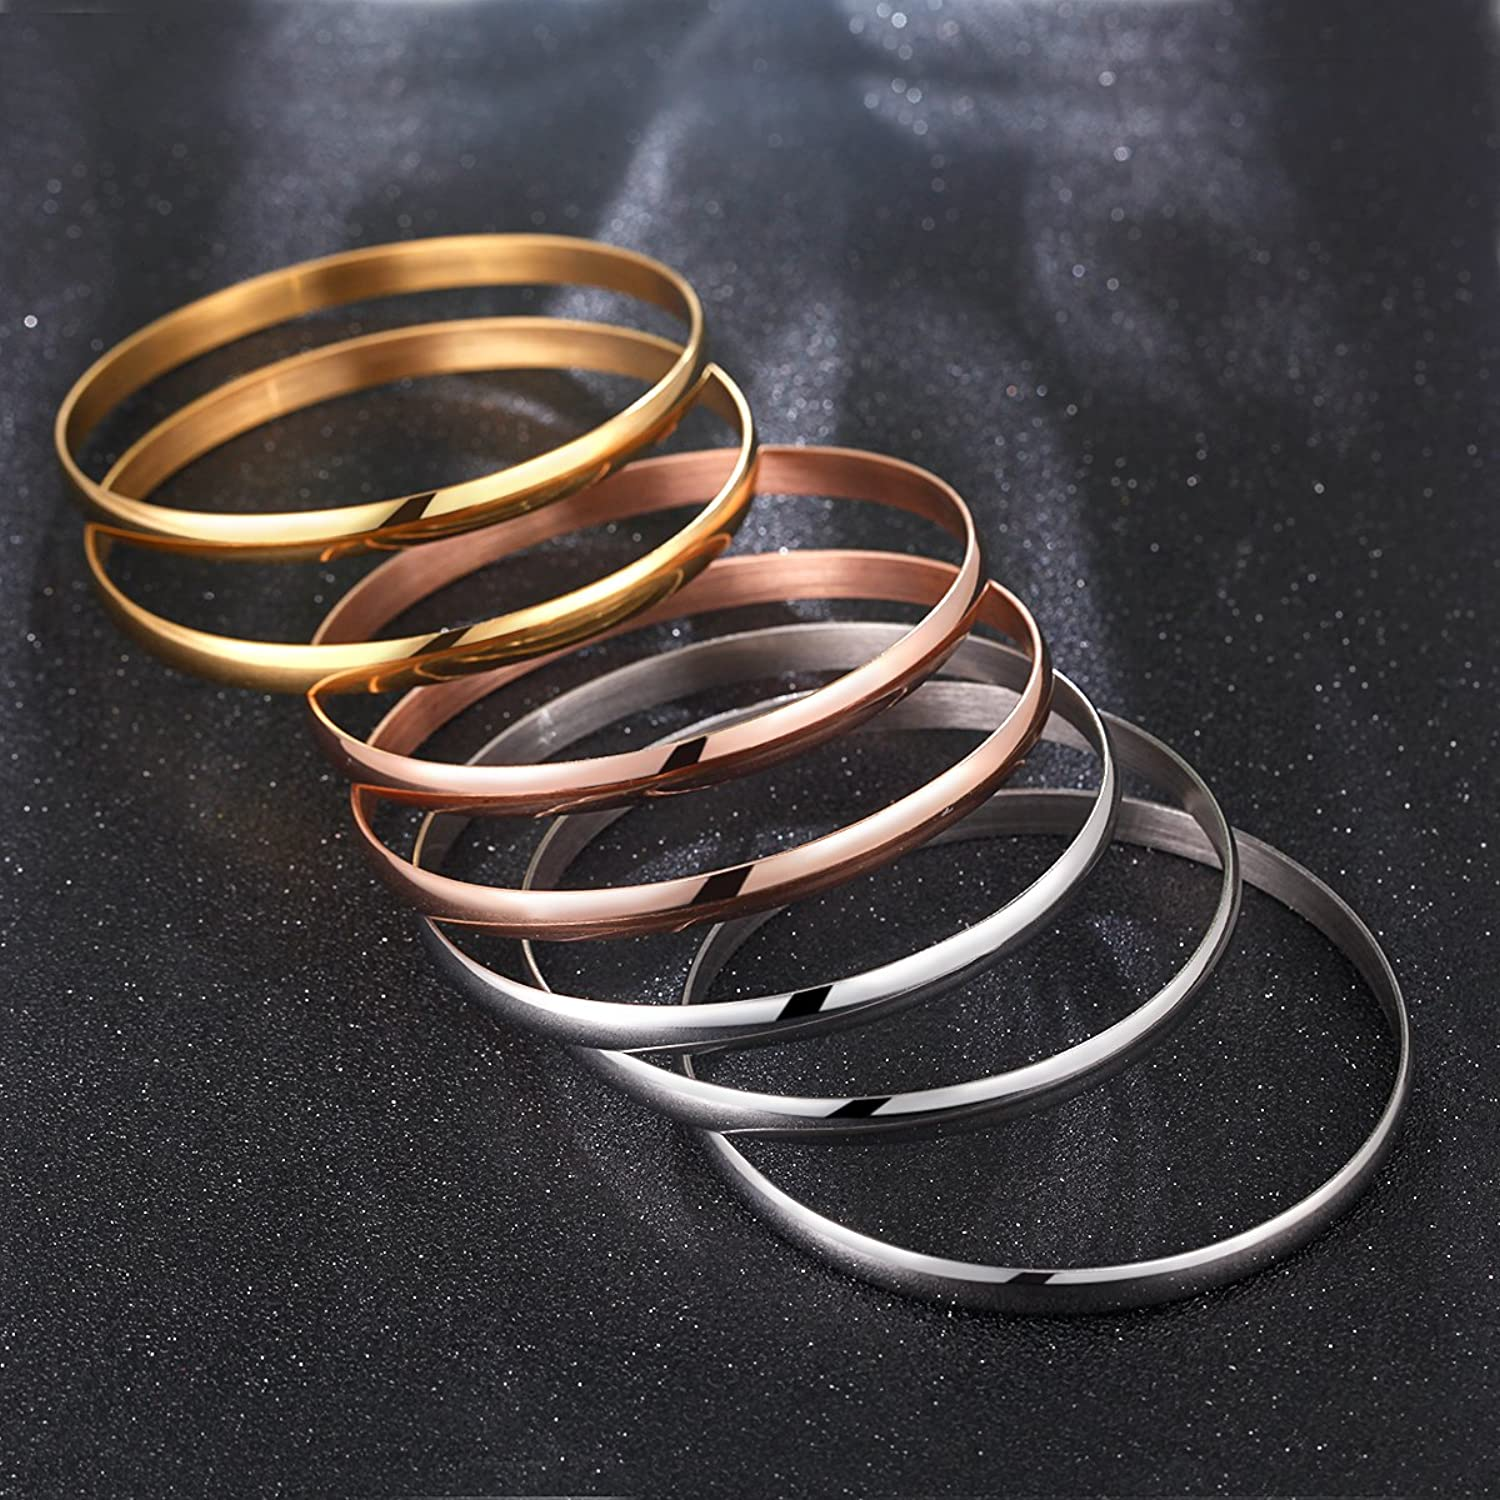 bangle tricolor rack bangles nordstrom shop of set image mesh product meshmerise